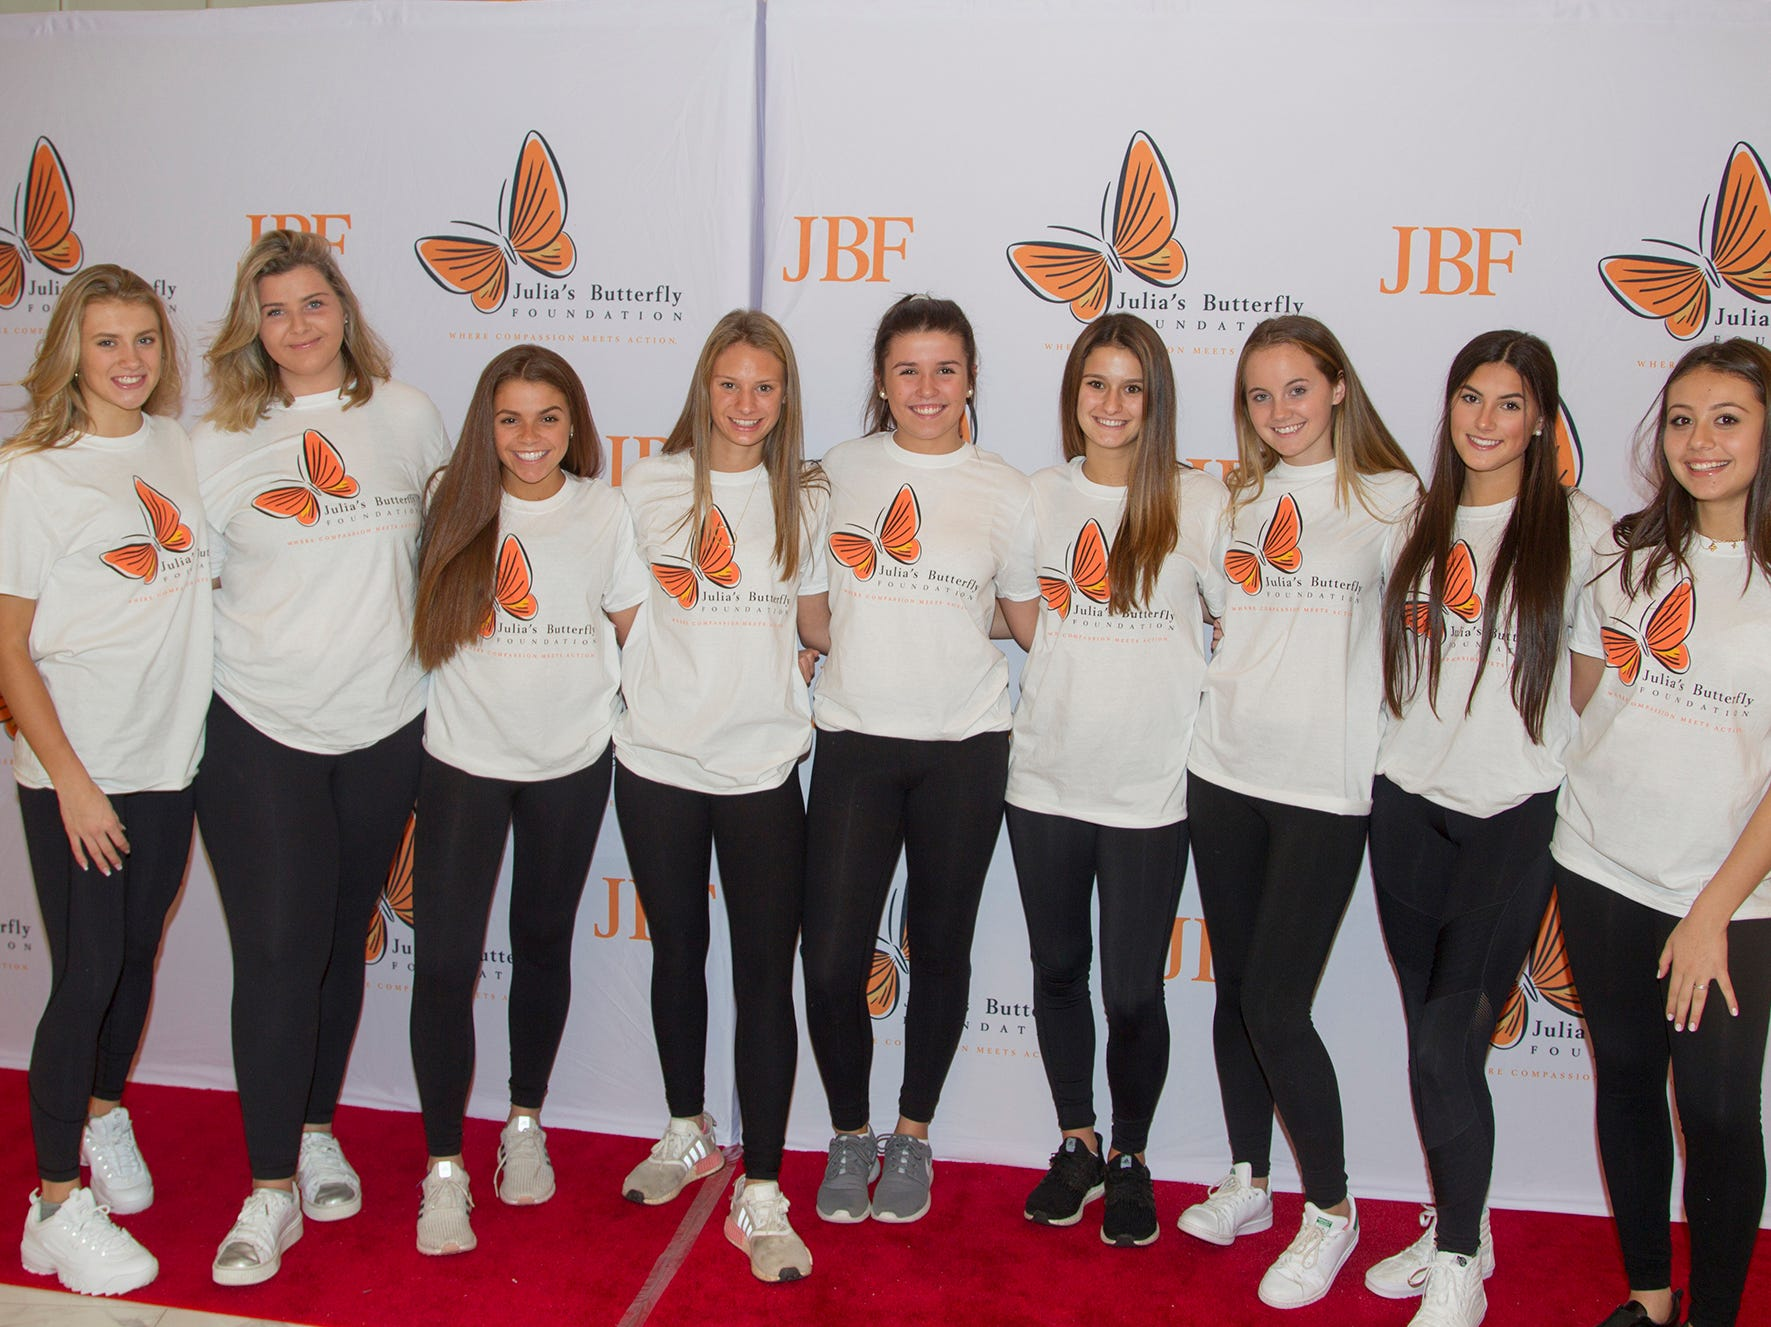 IHA Girl volunteers. The 13th annual Julia's Butterfly Foundation Ball at Macaluso's in Hawthrorne. Julia's Butterfly Foundation is a volunteer 501 (c) 3 organization whose mission is to provide assistance to families of chronically and terminally ill children to improve their quality of life. 11/11/2018